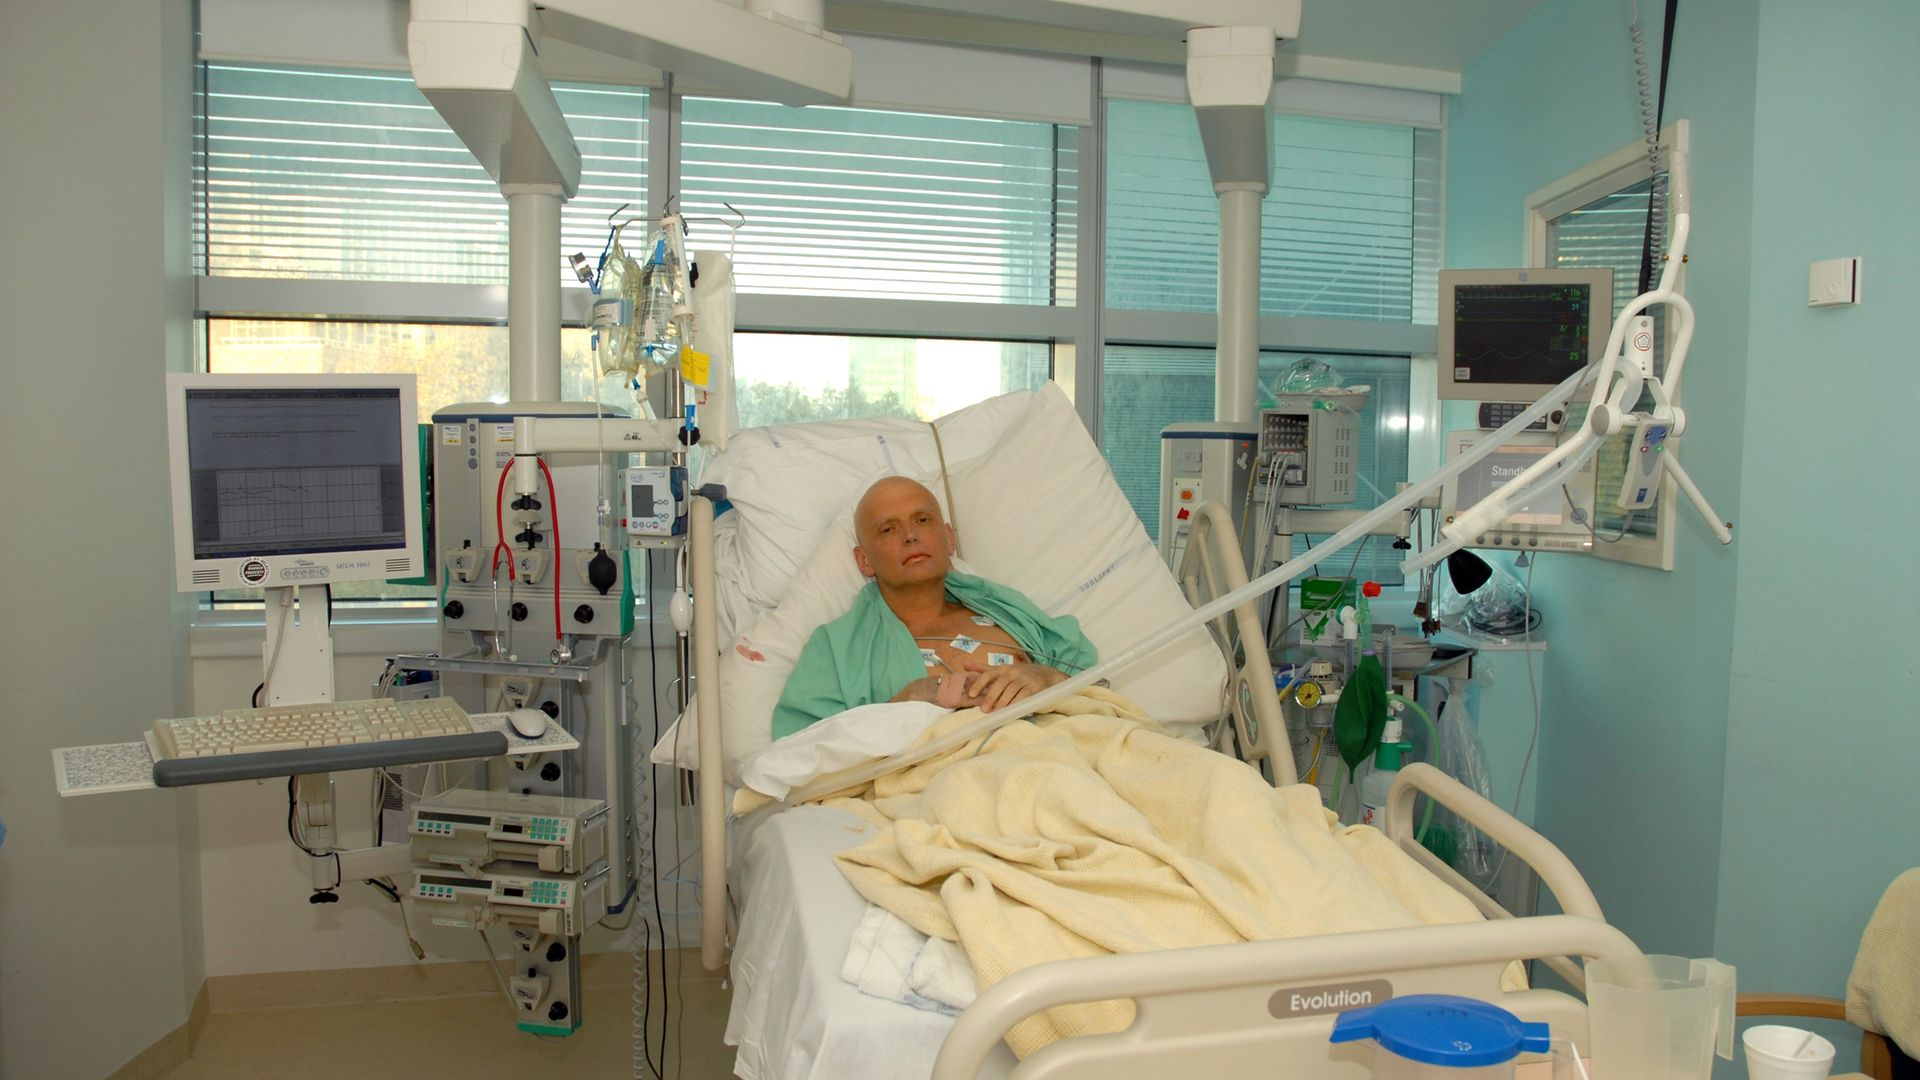 Alexander Litvinenko is pictured at the Intensive Care Unit of University College Hospital on November 20, 2006, three days before his death - Credit: Photo by Natasja Weitsz/Getty Images